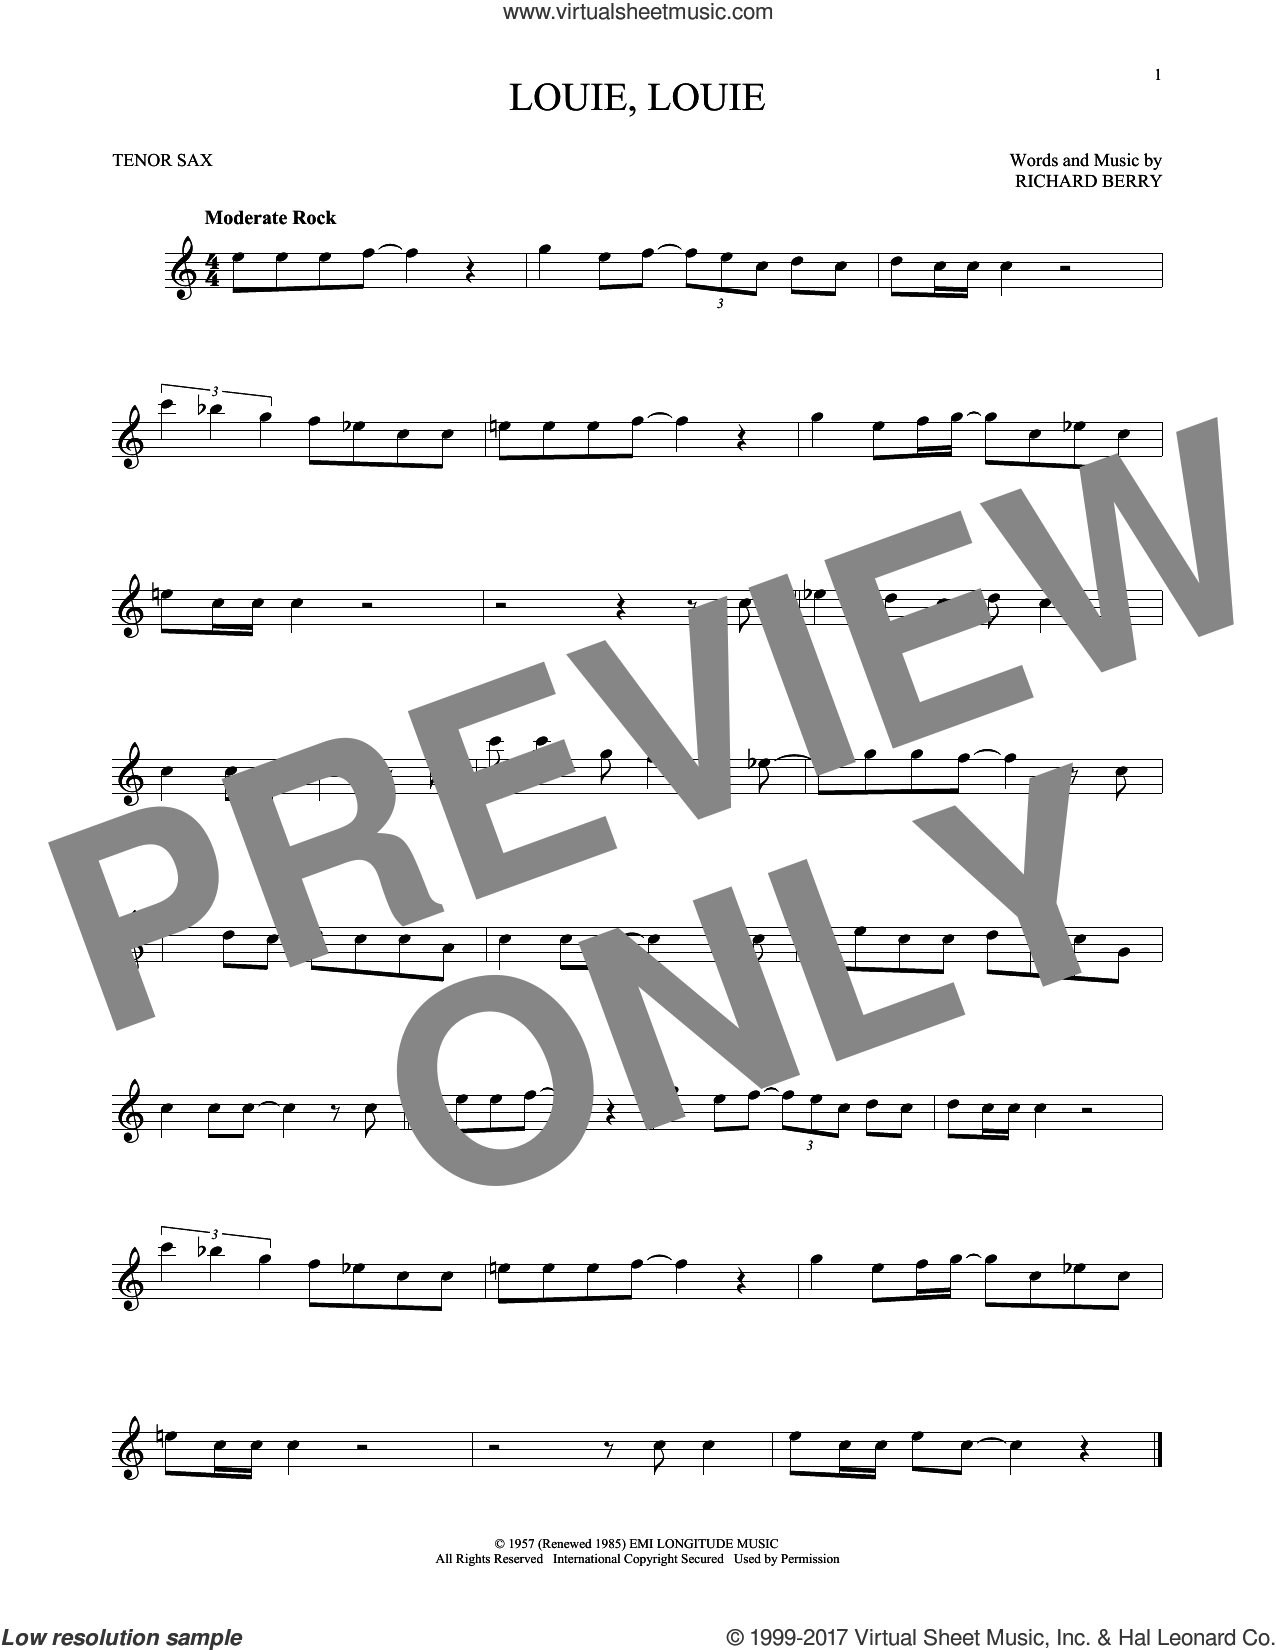 Louie, Louie sheet music for tenor saxophone solo by Kingsmen and Richard Berry, intermediate